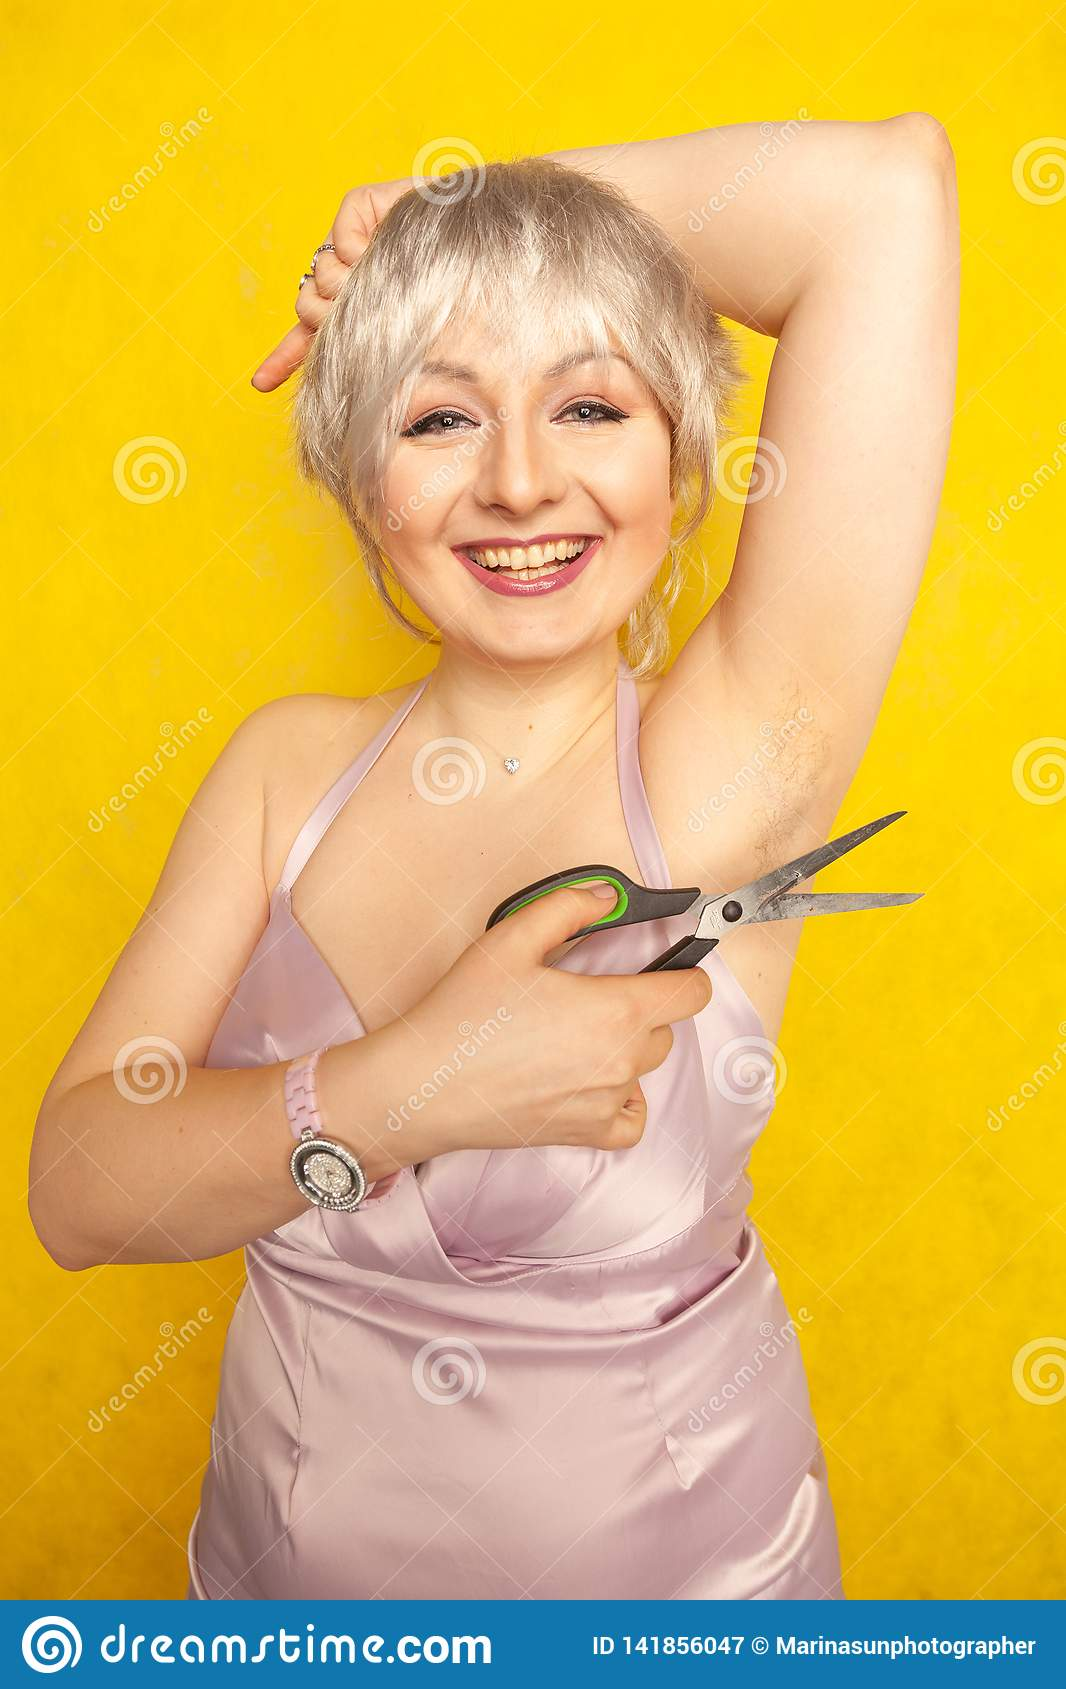 Chubby Girl In Dress With Unshaven Hairy Armpits And ...